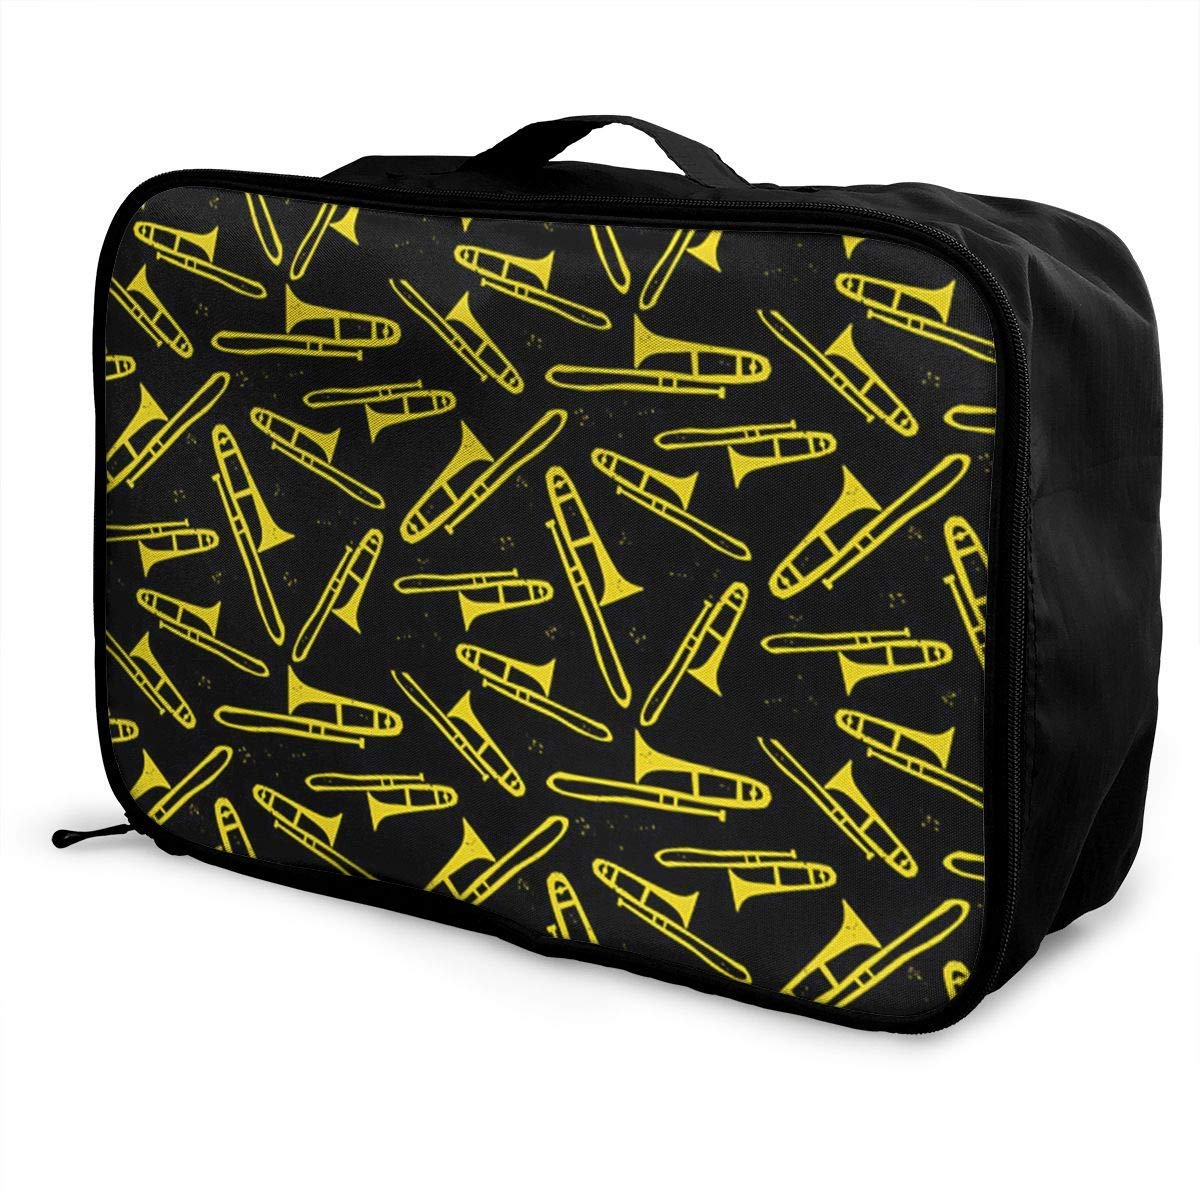 Portable Luggage Duffel Bag Black And Yellow Trombone Travel Bags Carry-on In Trolley Handle